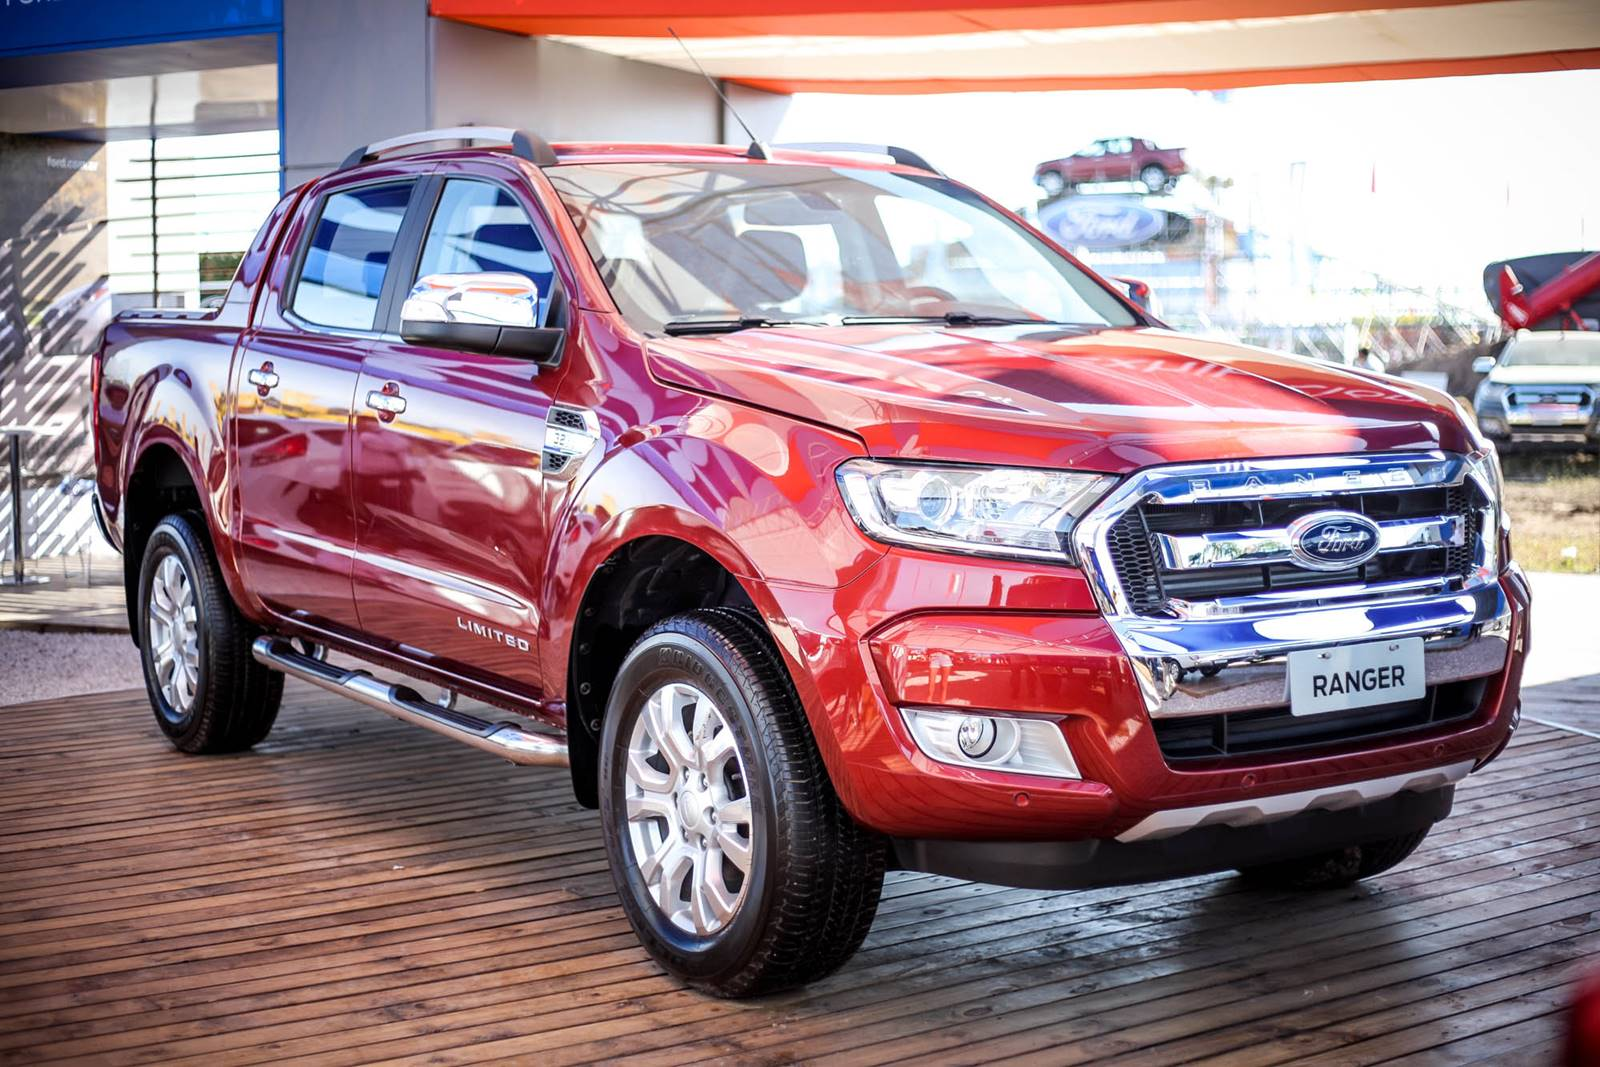 nova ford ranger 2017 diesel fotos e tabela de pre os car blog br. Black Bedroom Furniture Sets. Home Design Ideas